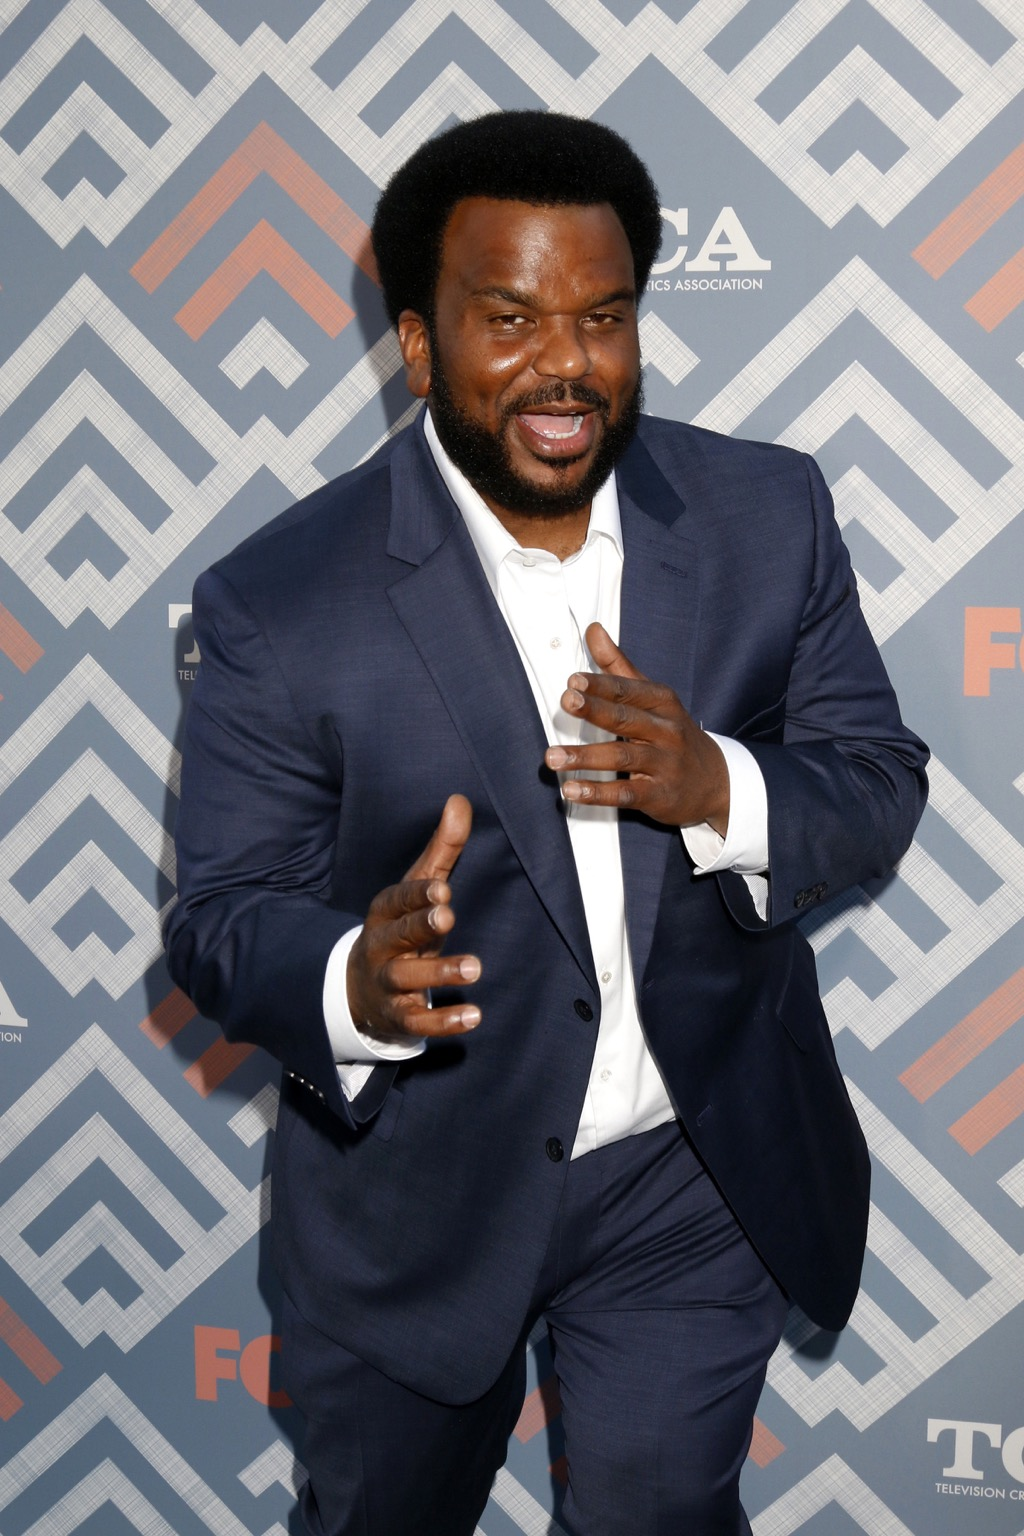 craig robinson celebrity weight loss stories